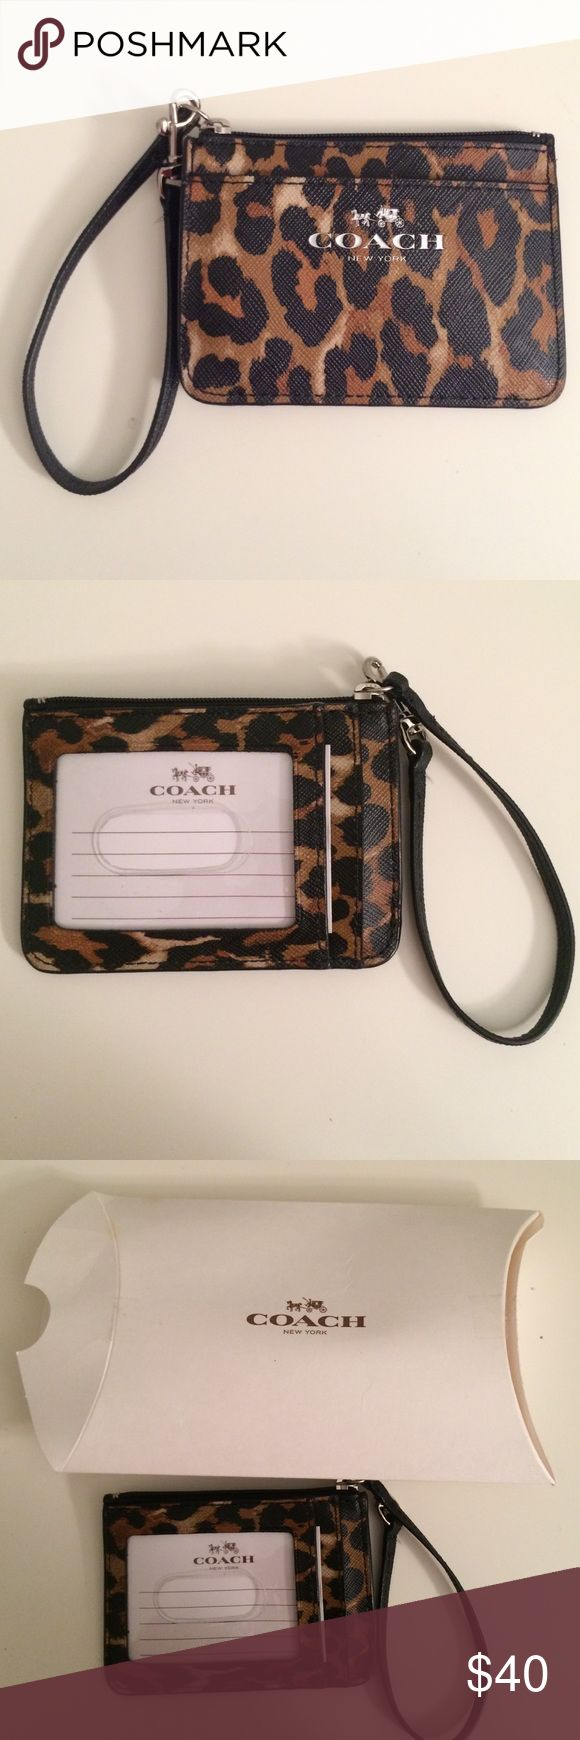 Coach wristlet wallet Cute little wristlet that serves as an id/card holder. Never used before. Still in box Coach Bags